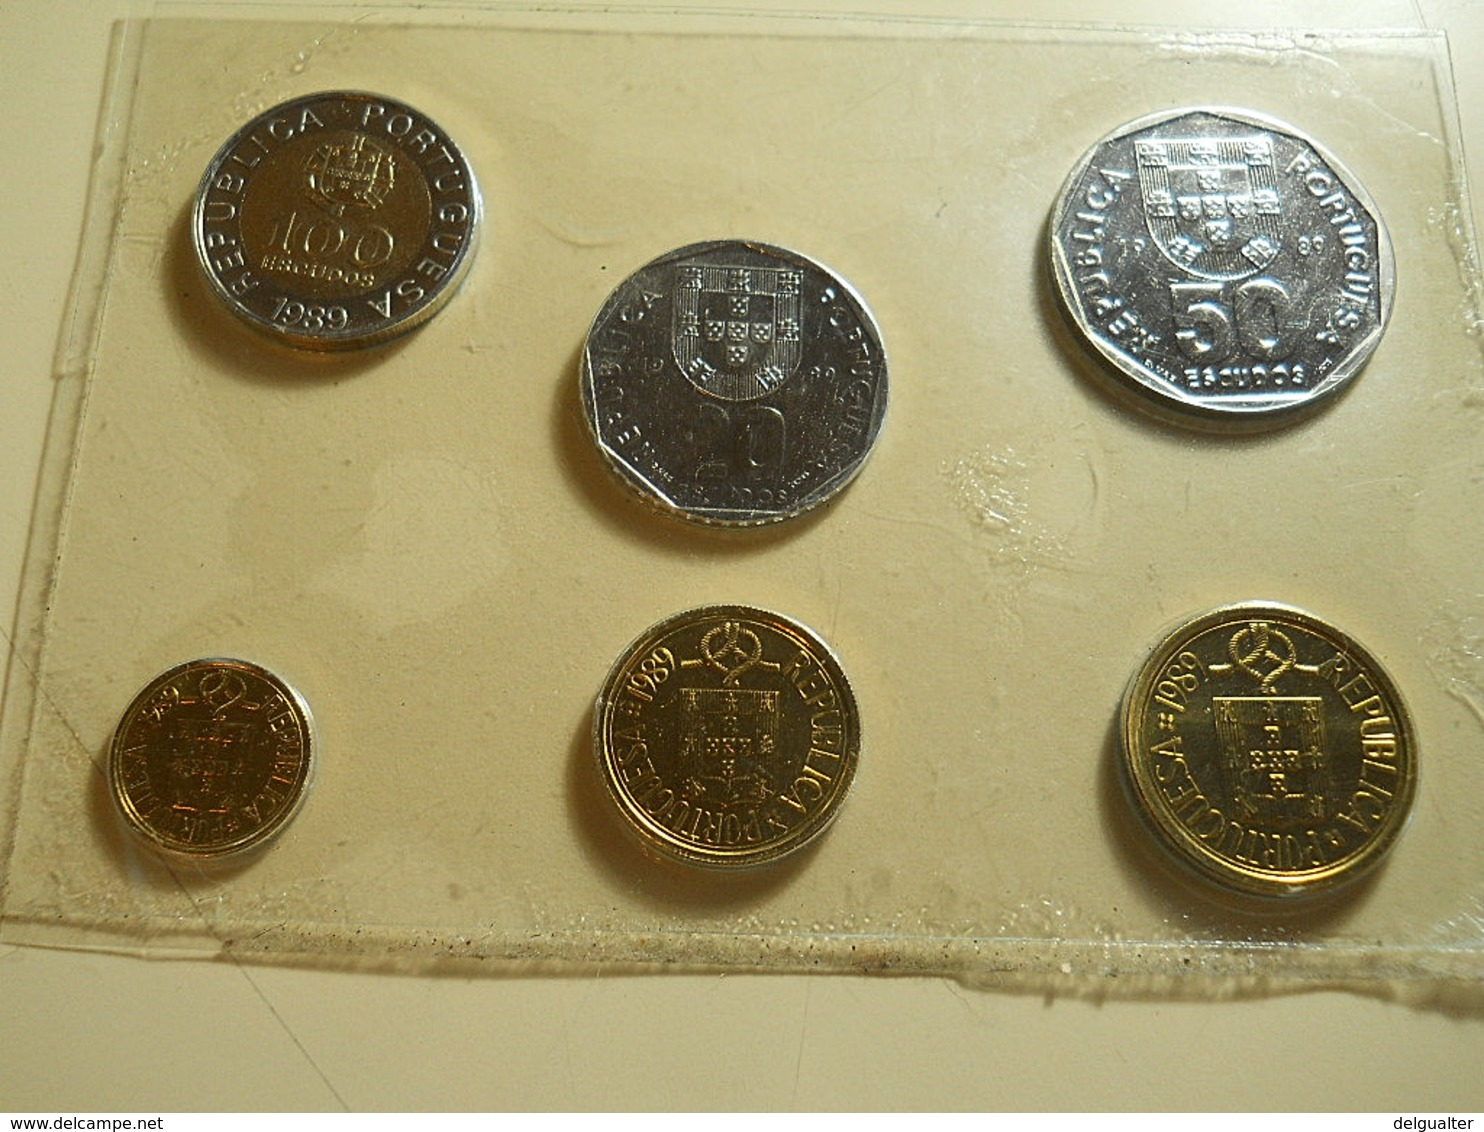 Portugal Serie 1989 BU Coins Without Box As Image - Portugal